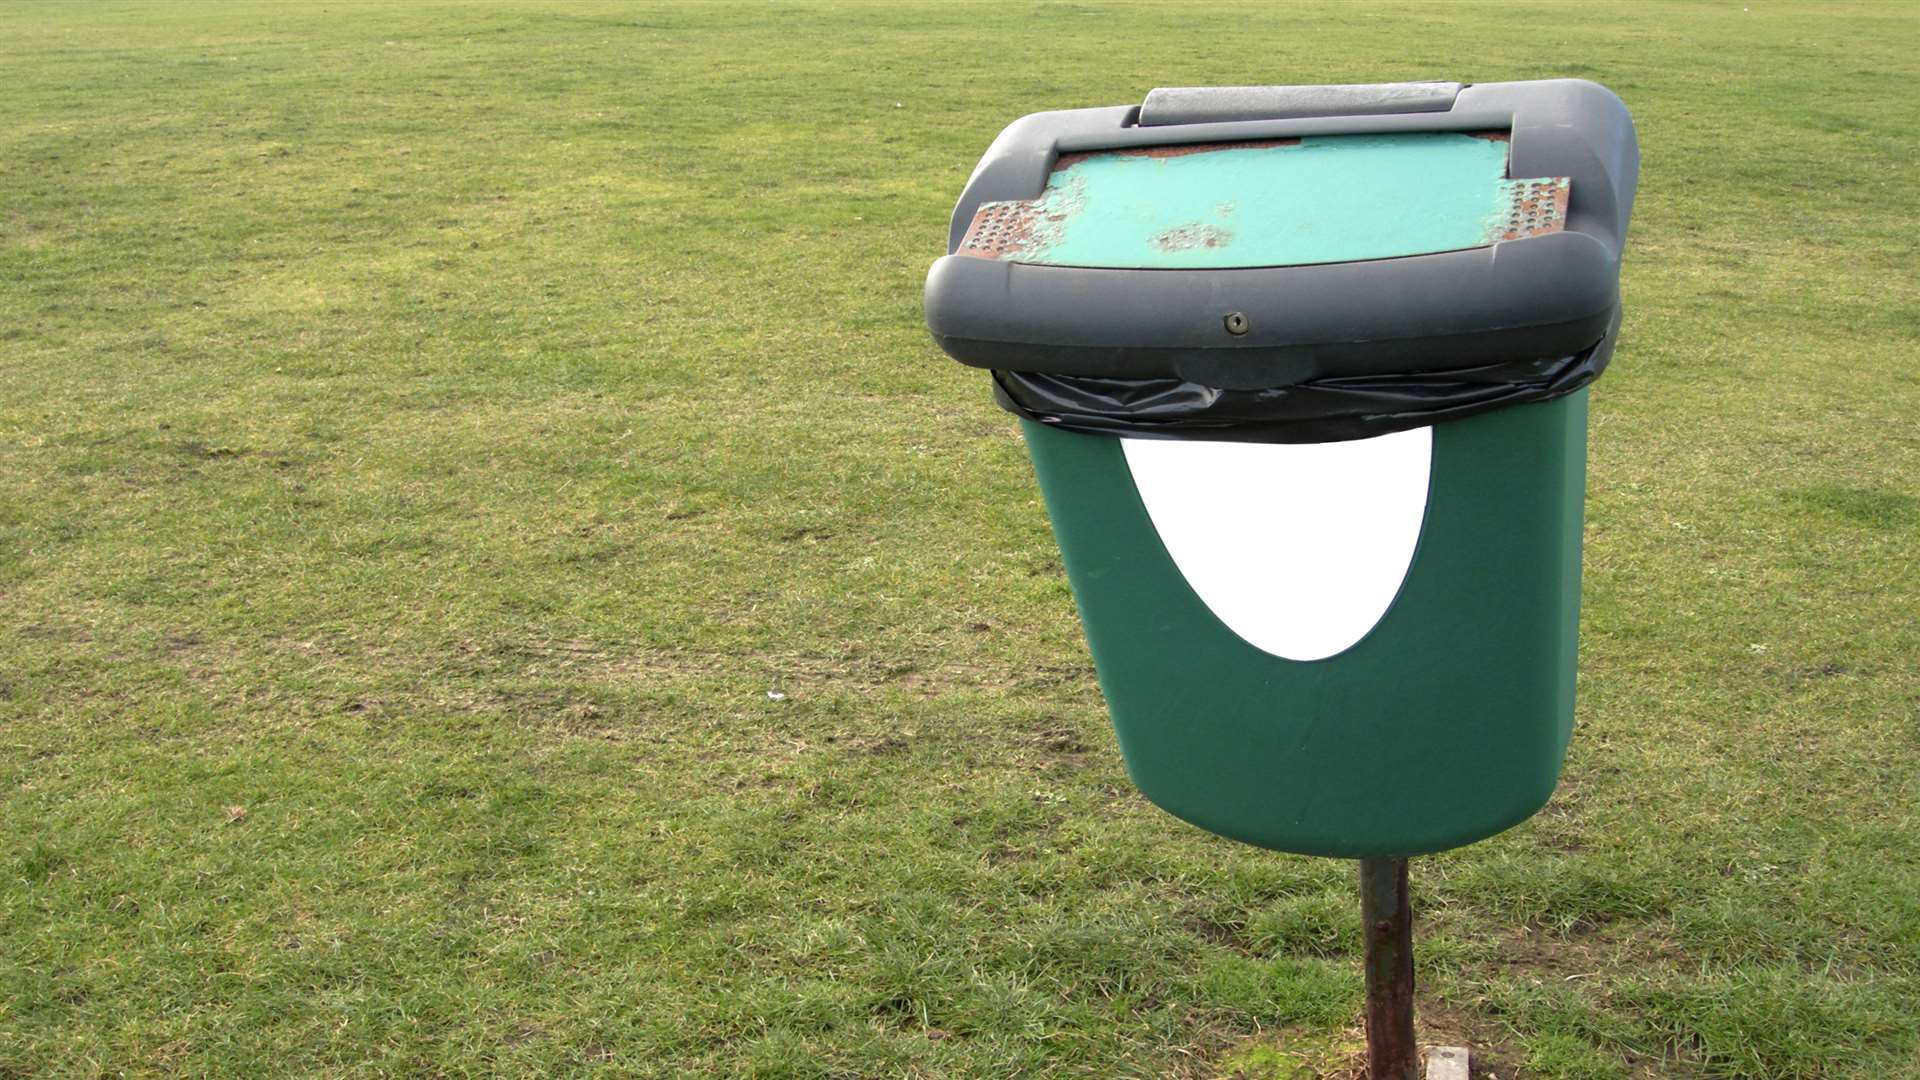 Dog waste bins for pet owners to dispose of their waste during walks